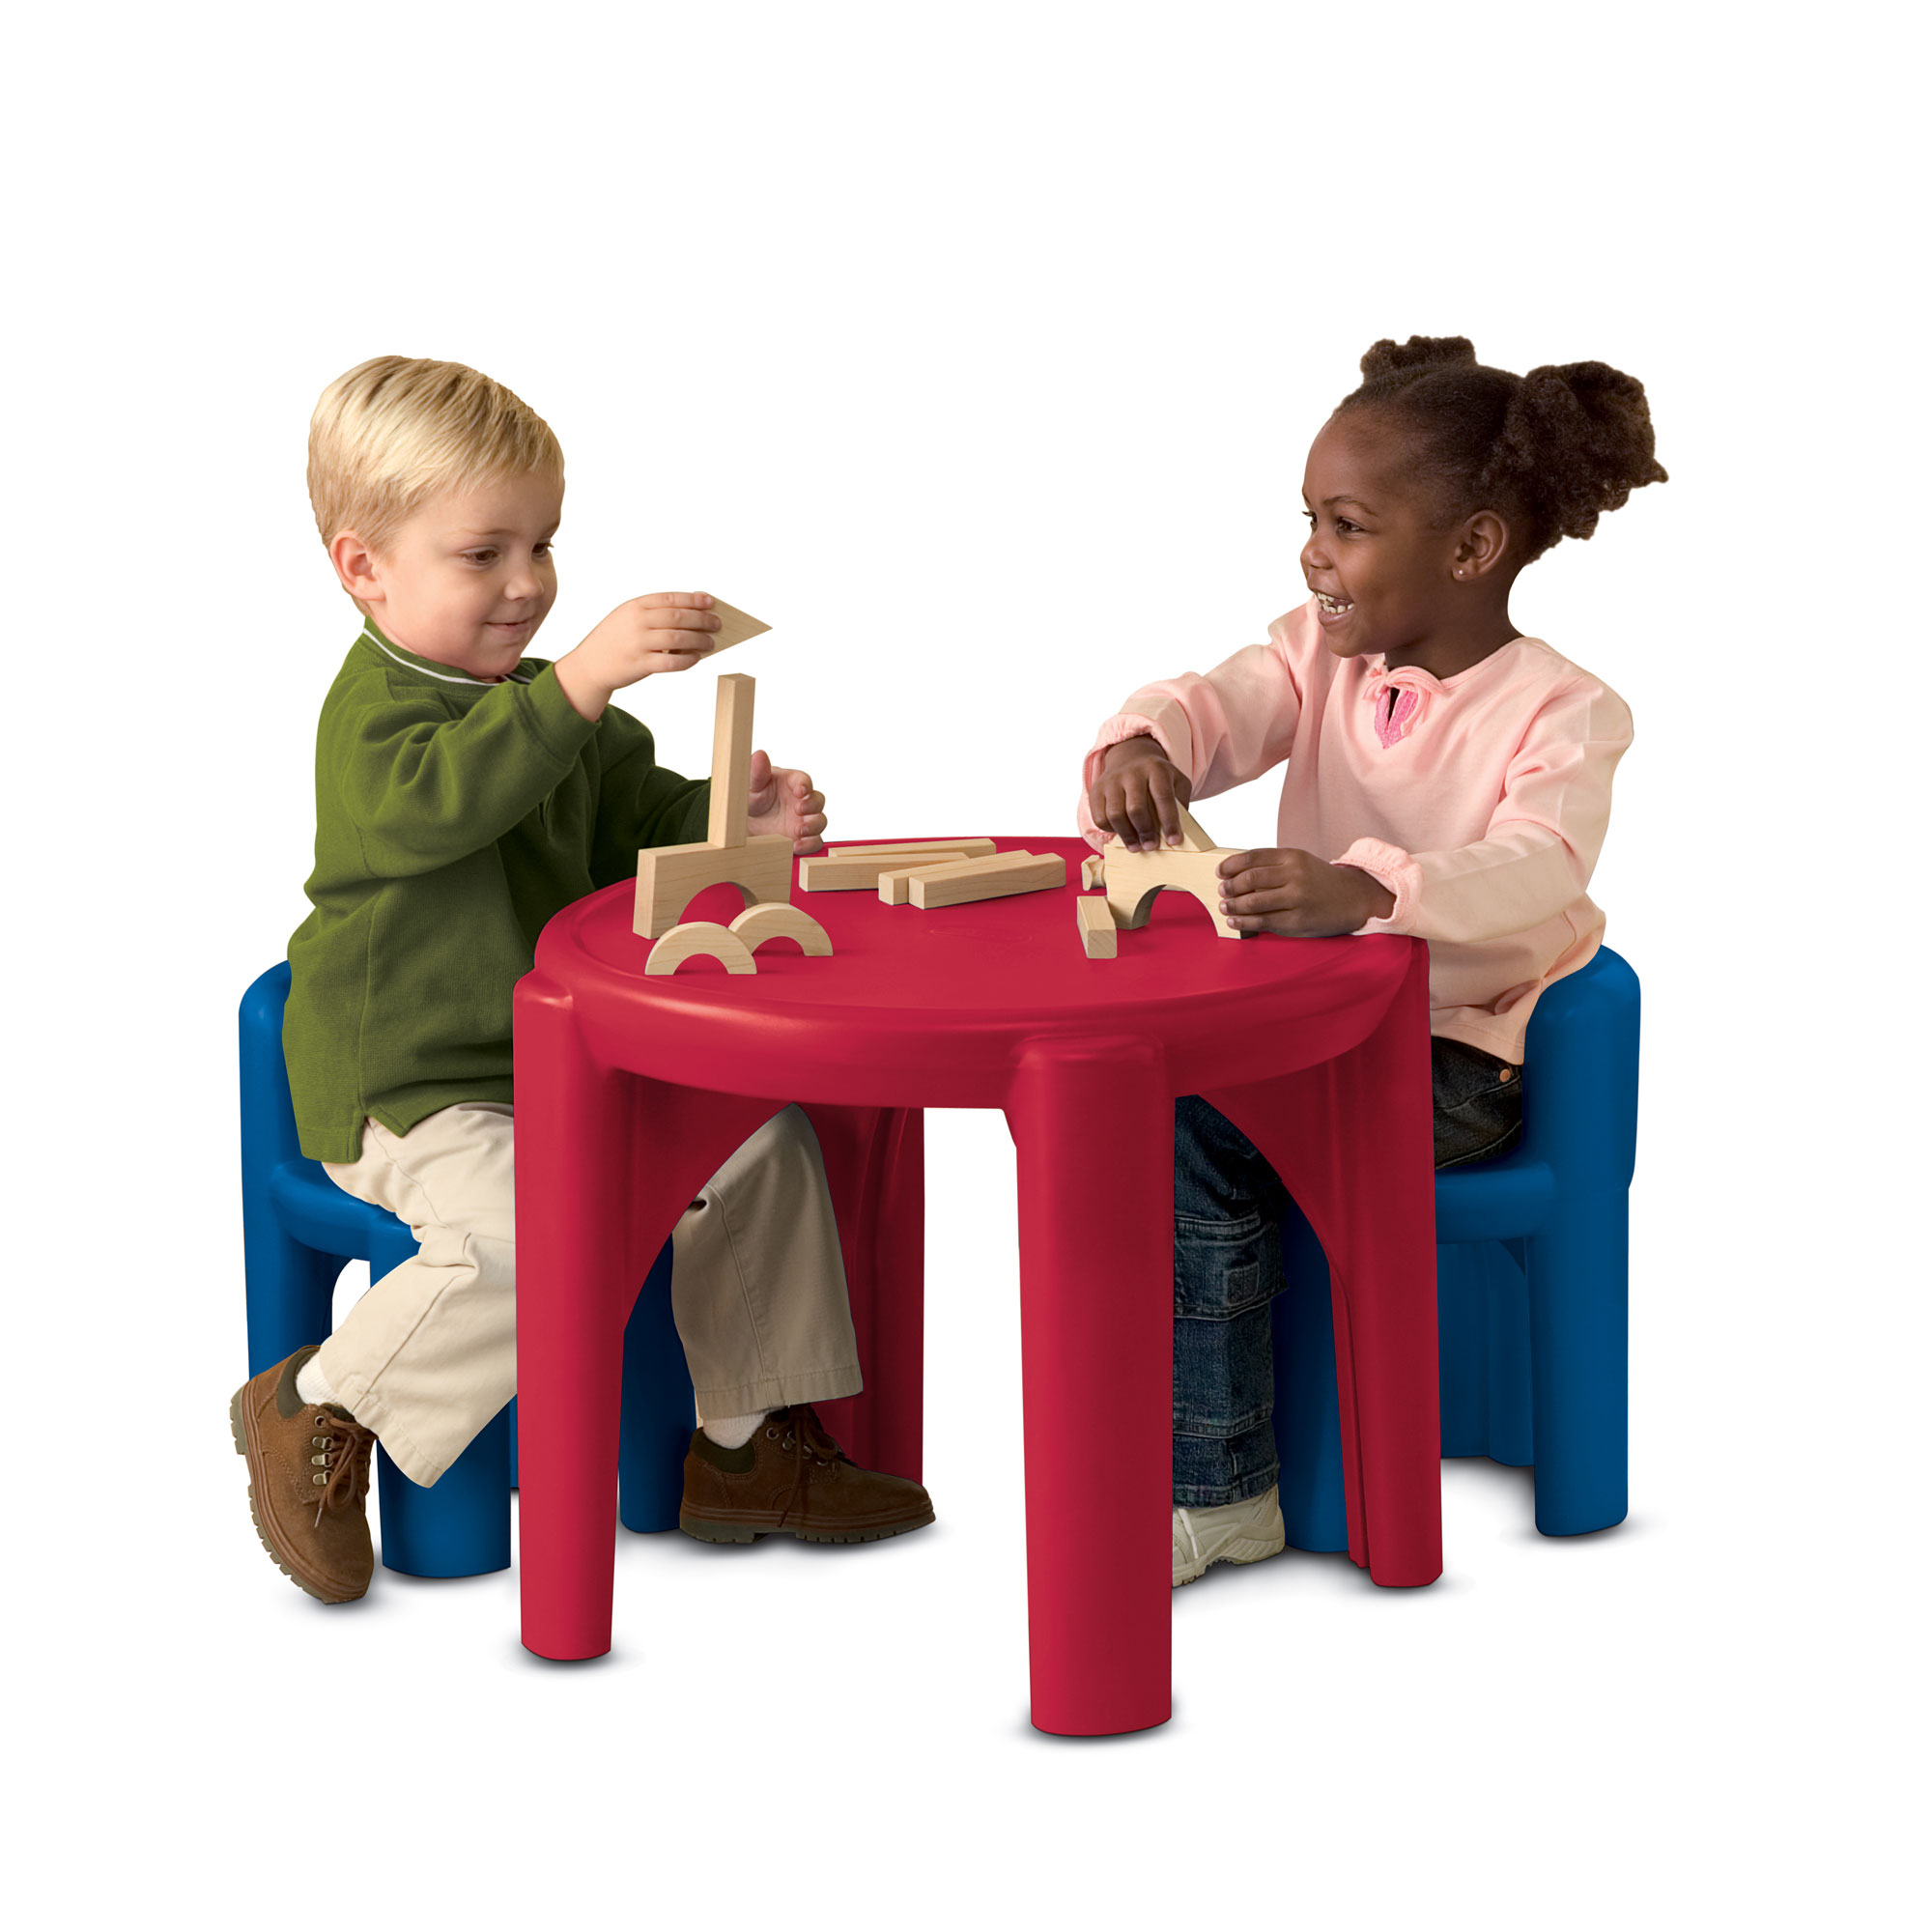 Little Tikes Activity Table With 2 Chairs Play Set Children Primary Colors 50743606458